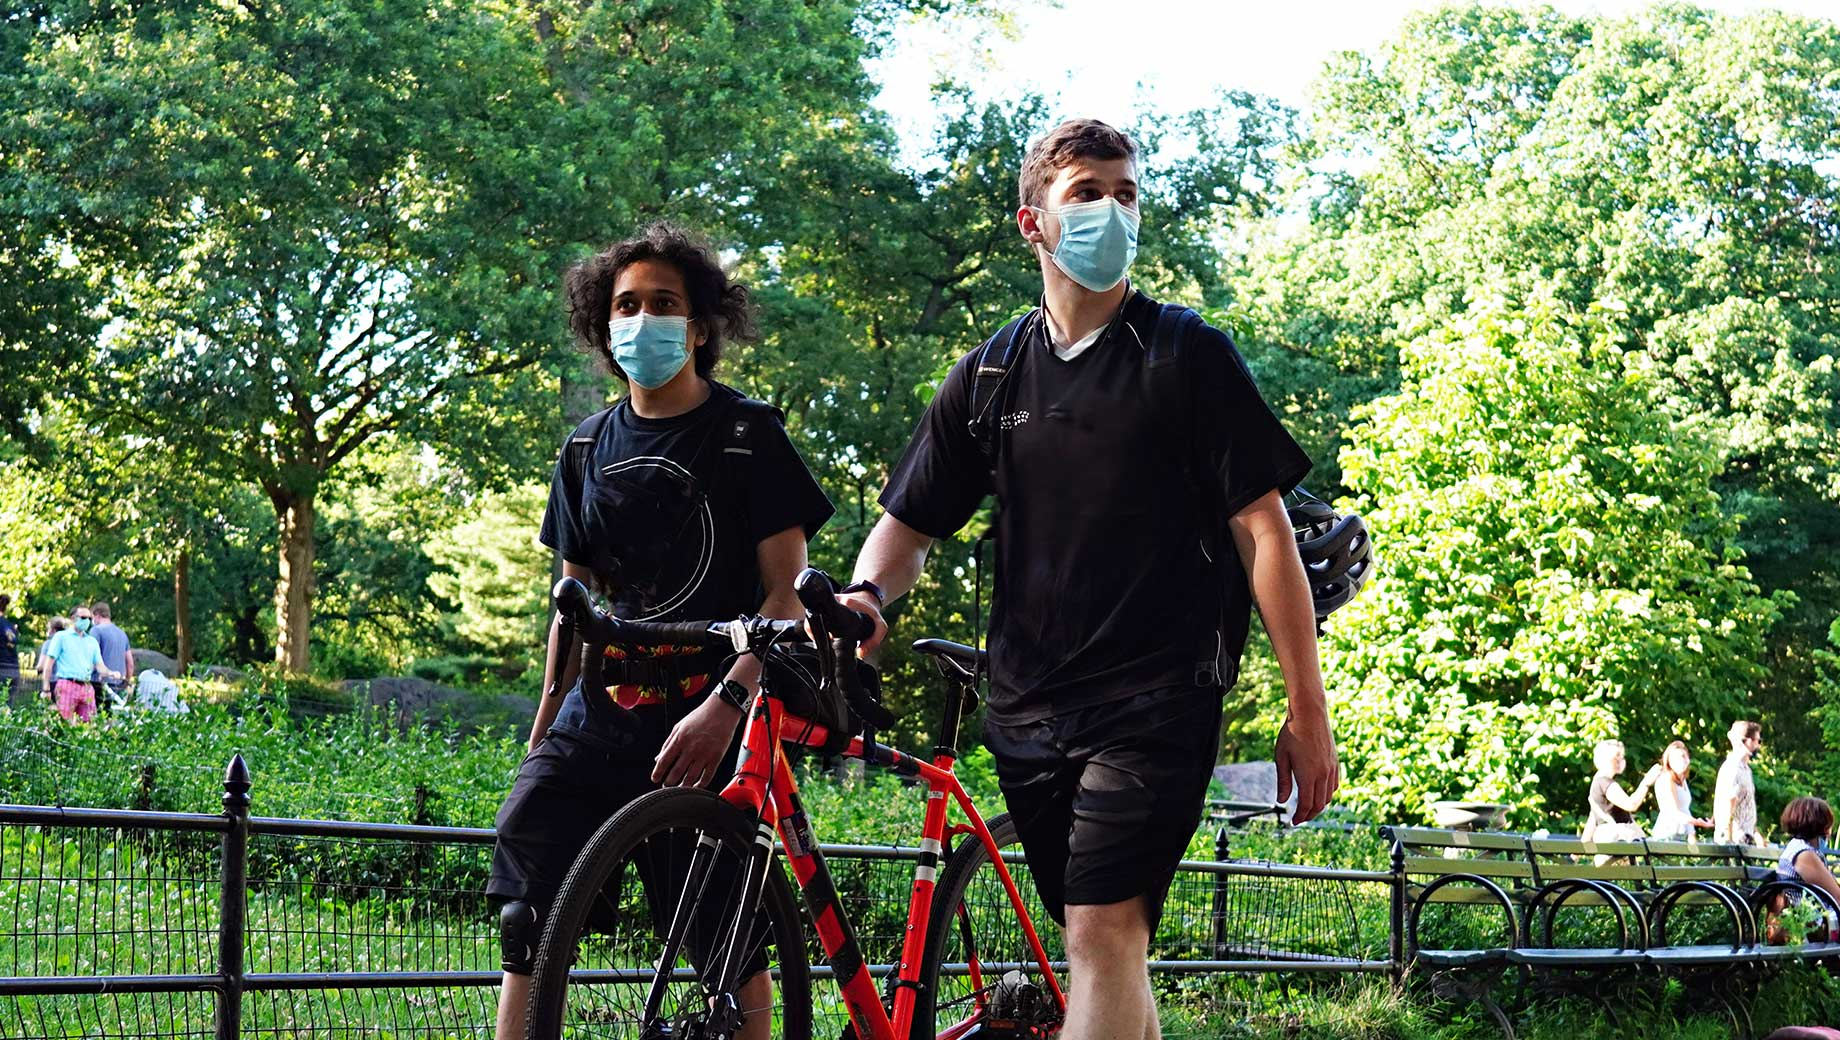 U.S. Face Mask Usage Relatively Uncommon in Outdoor Settings